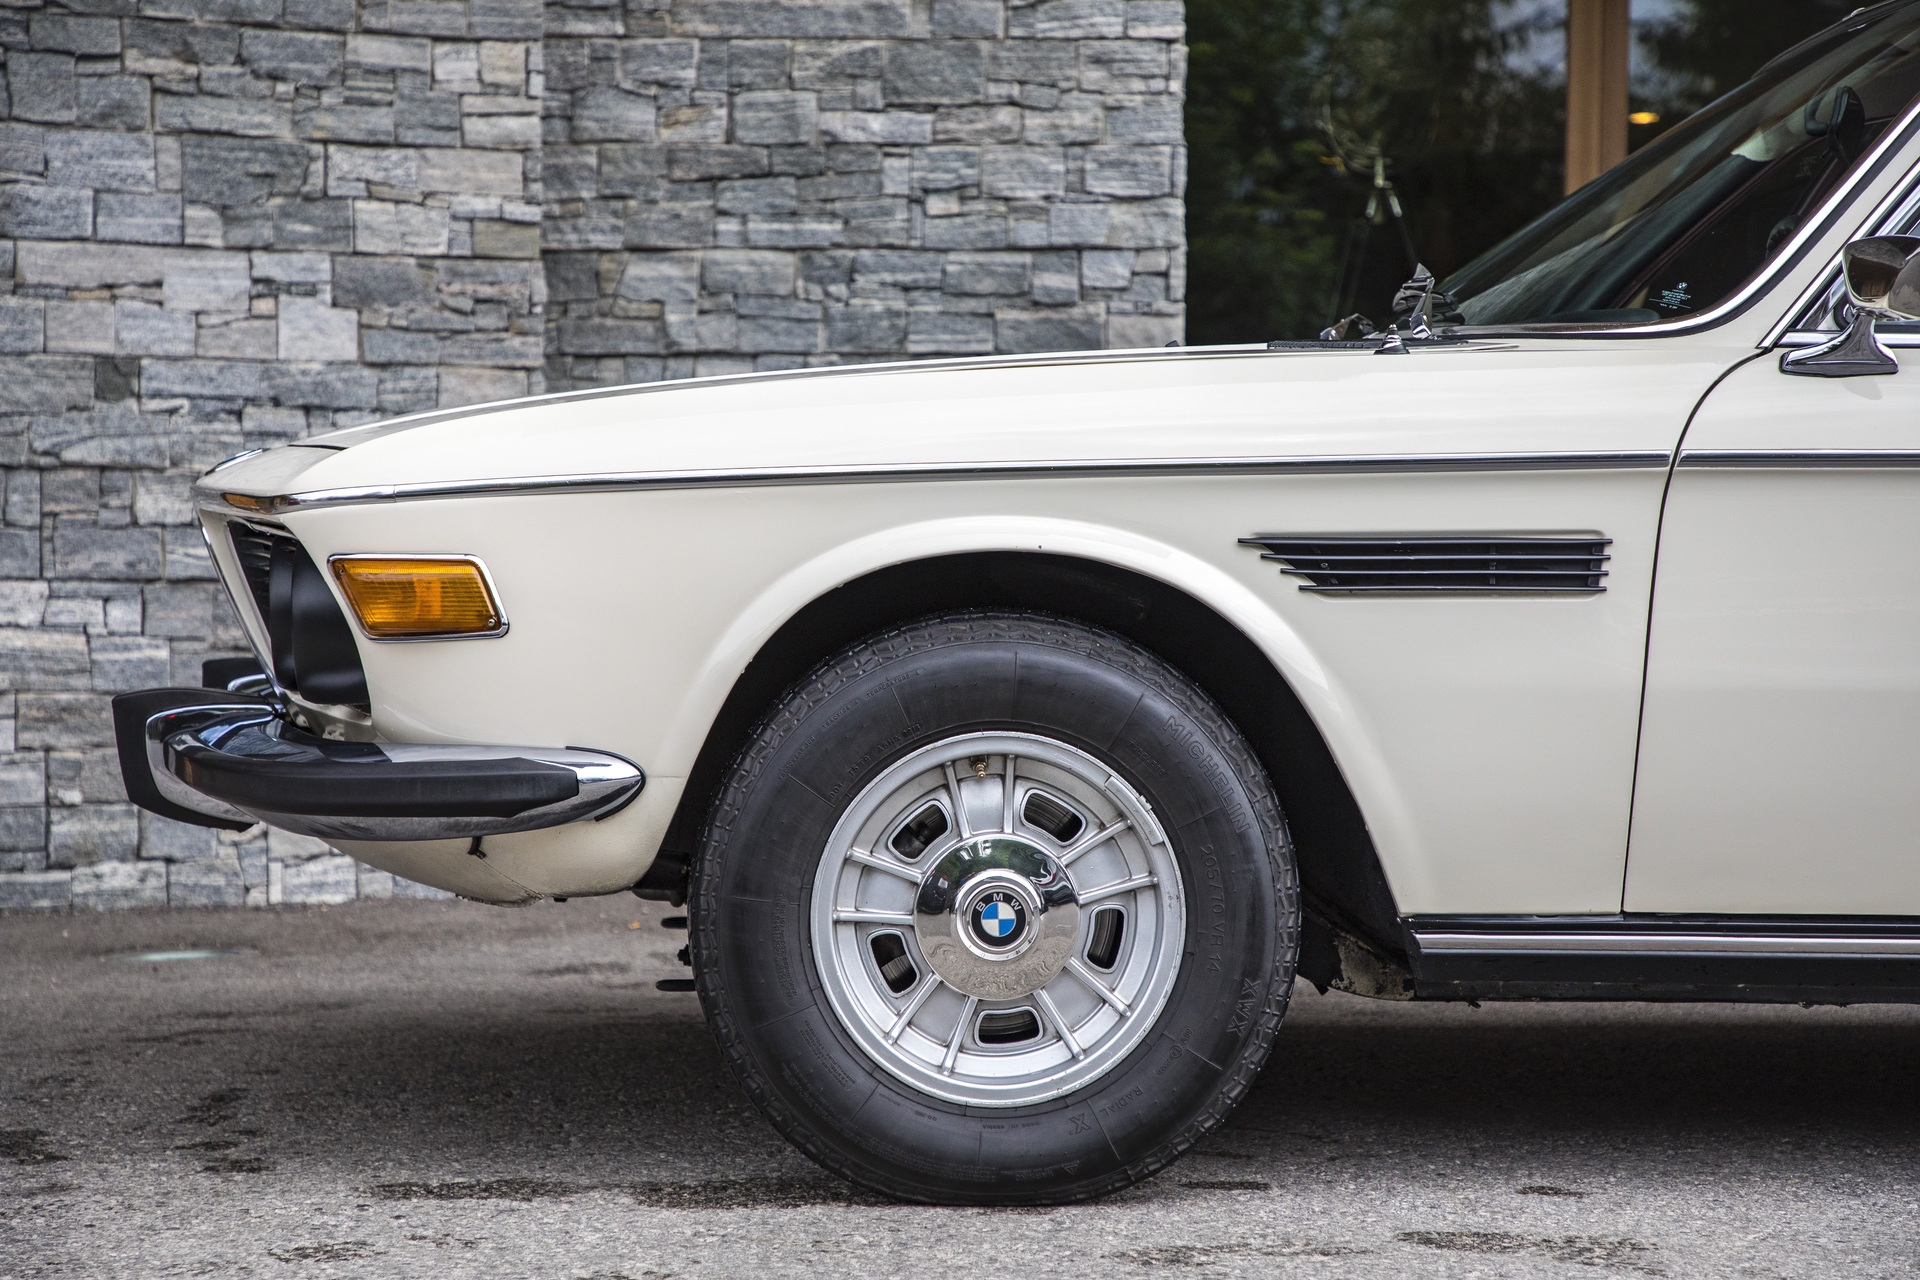 TEST DRIVE: 1973 BMW 3 0 CSi Review – The Definition Of Grace